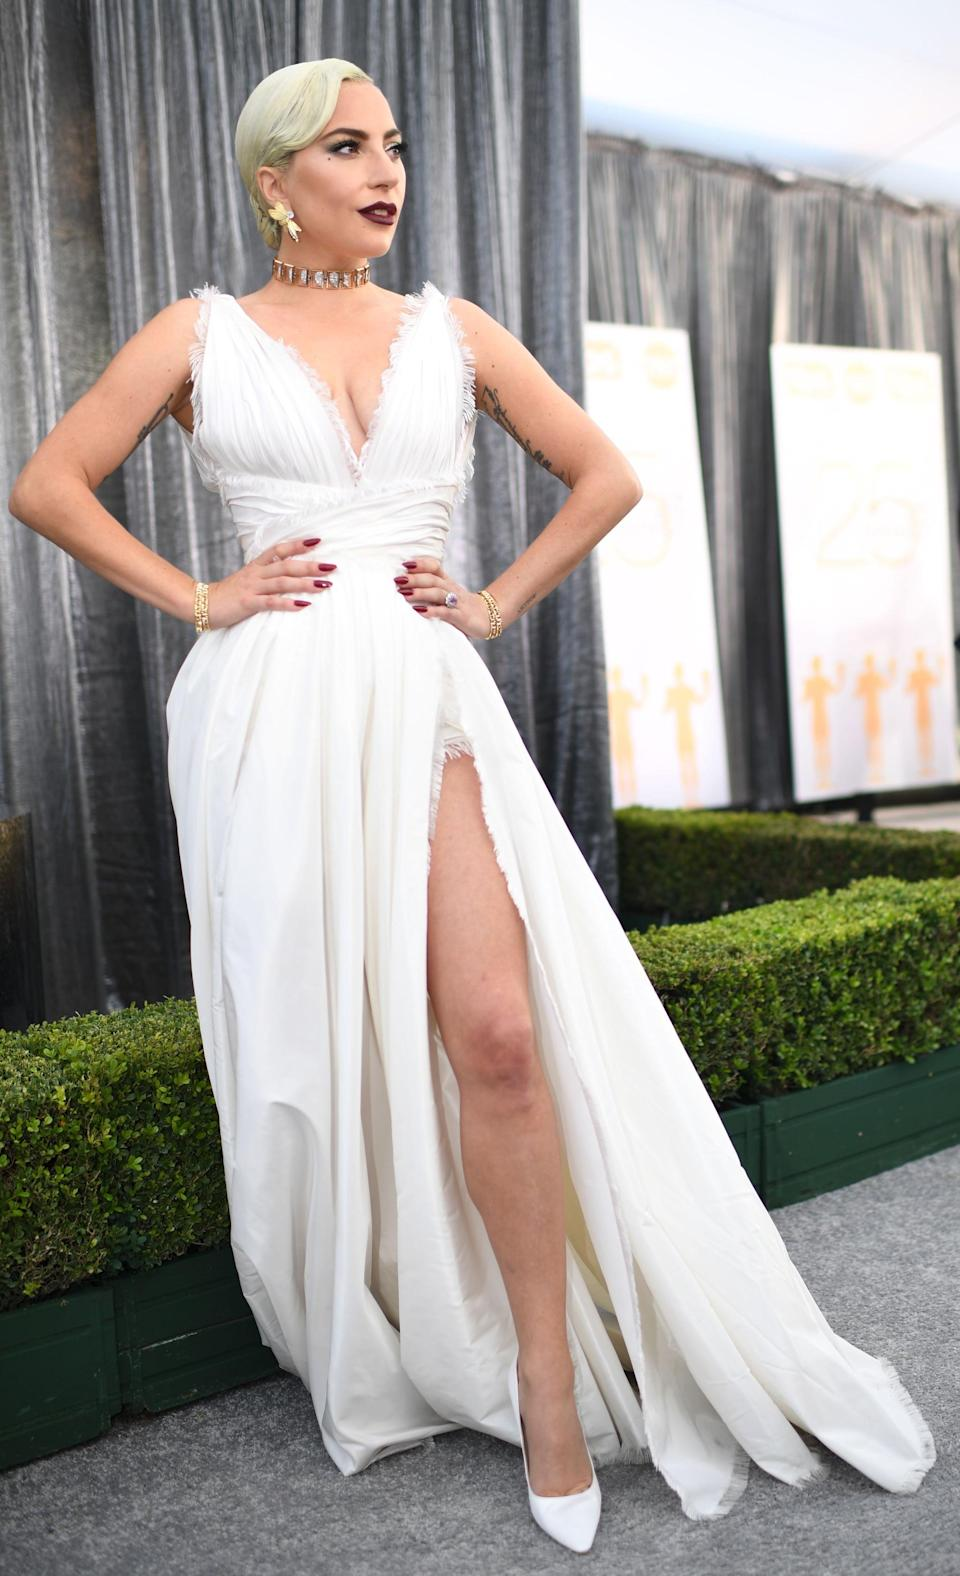 """<p>Wearing a white <a rel=""""nofollow noopener"""" href=""""https://www.popsugar.com/fashion/Lady-Gaga-Dior-Dress-SAG-Awards-2019-45717550"""" target=""""_blank"""" data-ylk=""""slk:Dior Haute Couture"""" class=""""link rapid-noclick-resp"""">Dior Haute Couture</a> with Jimmy Choo heels and Tiffany & Co. jewels.</p>"""